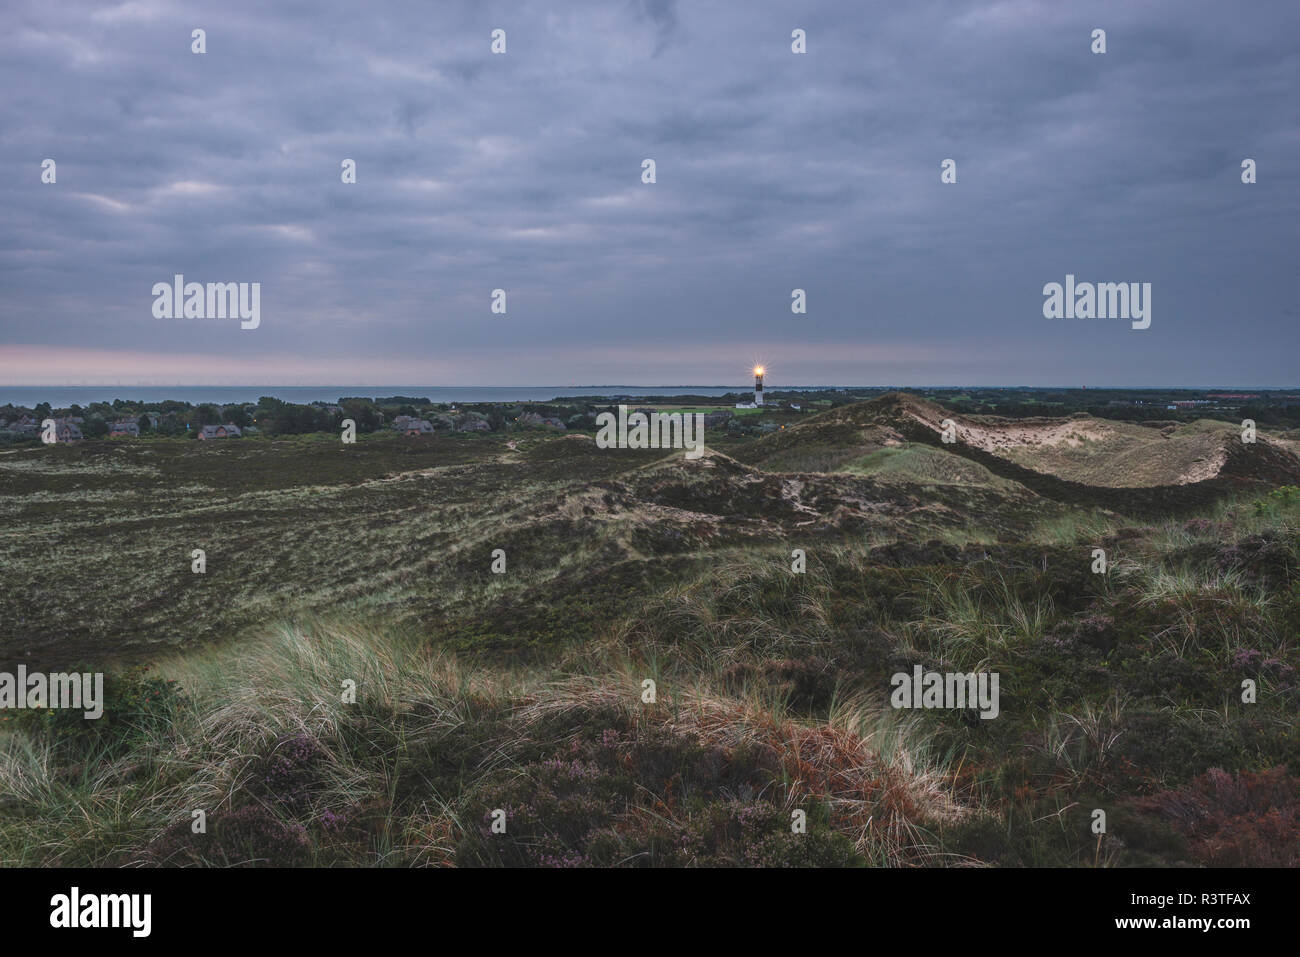 Germany, Schleswig-Holstein, Sylt, Kampen, view from Uwe dune to lighthouse - Stock Image